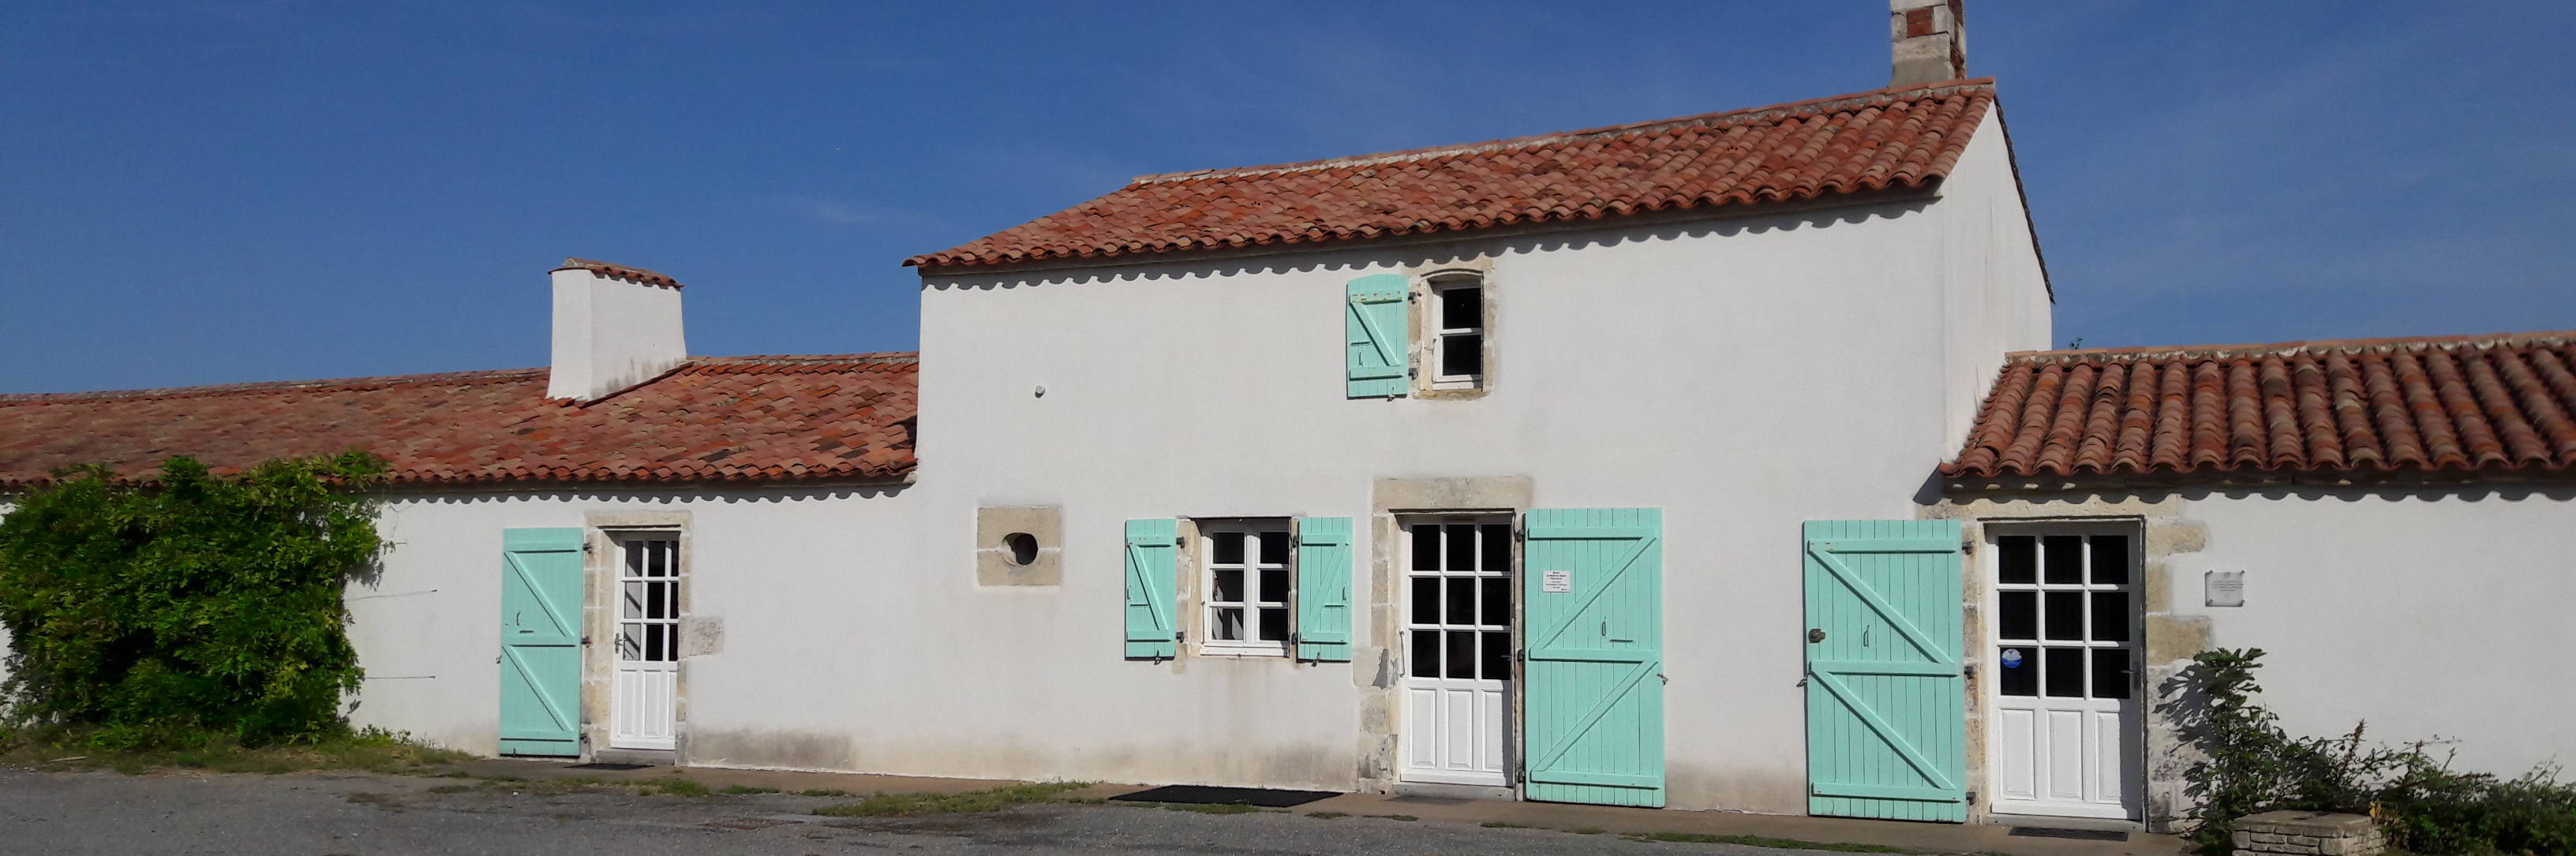 The House of the Master of Dykes in the Marais poitevin